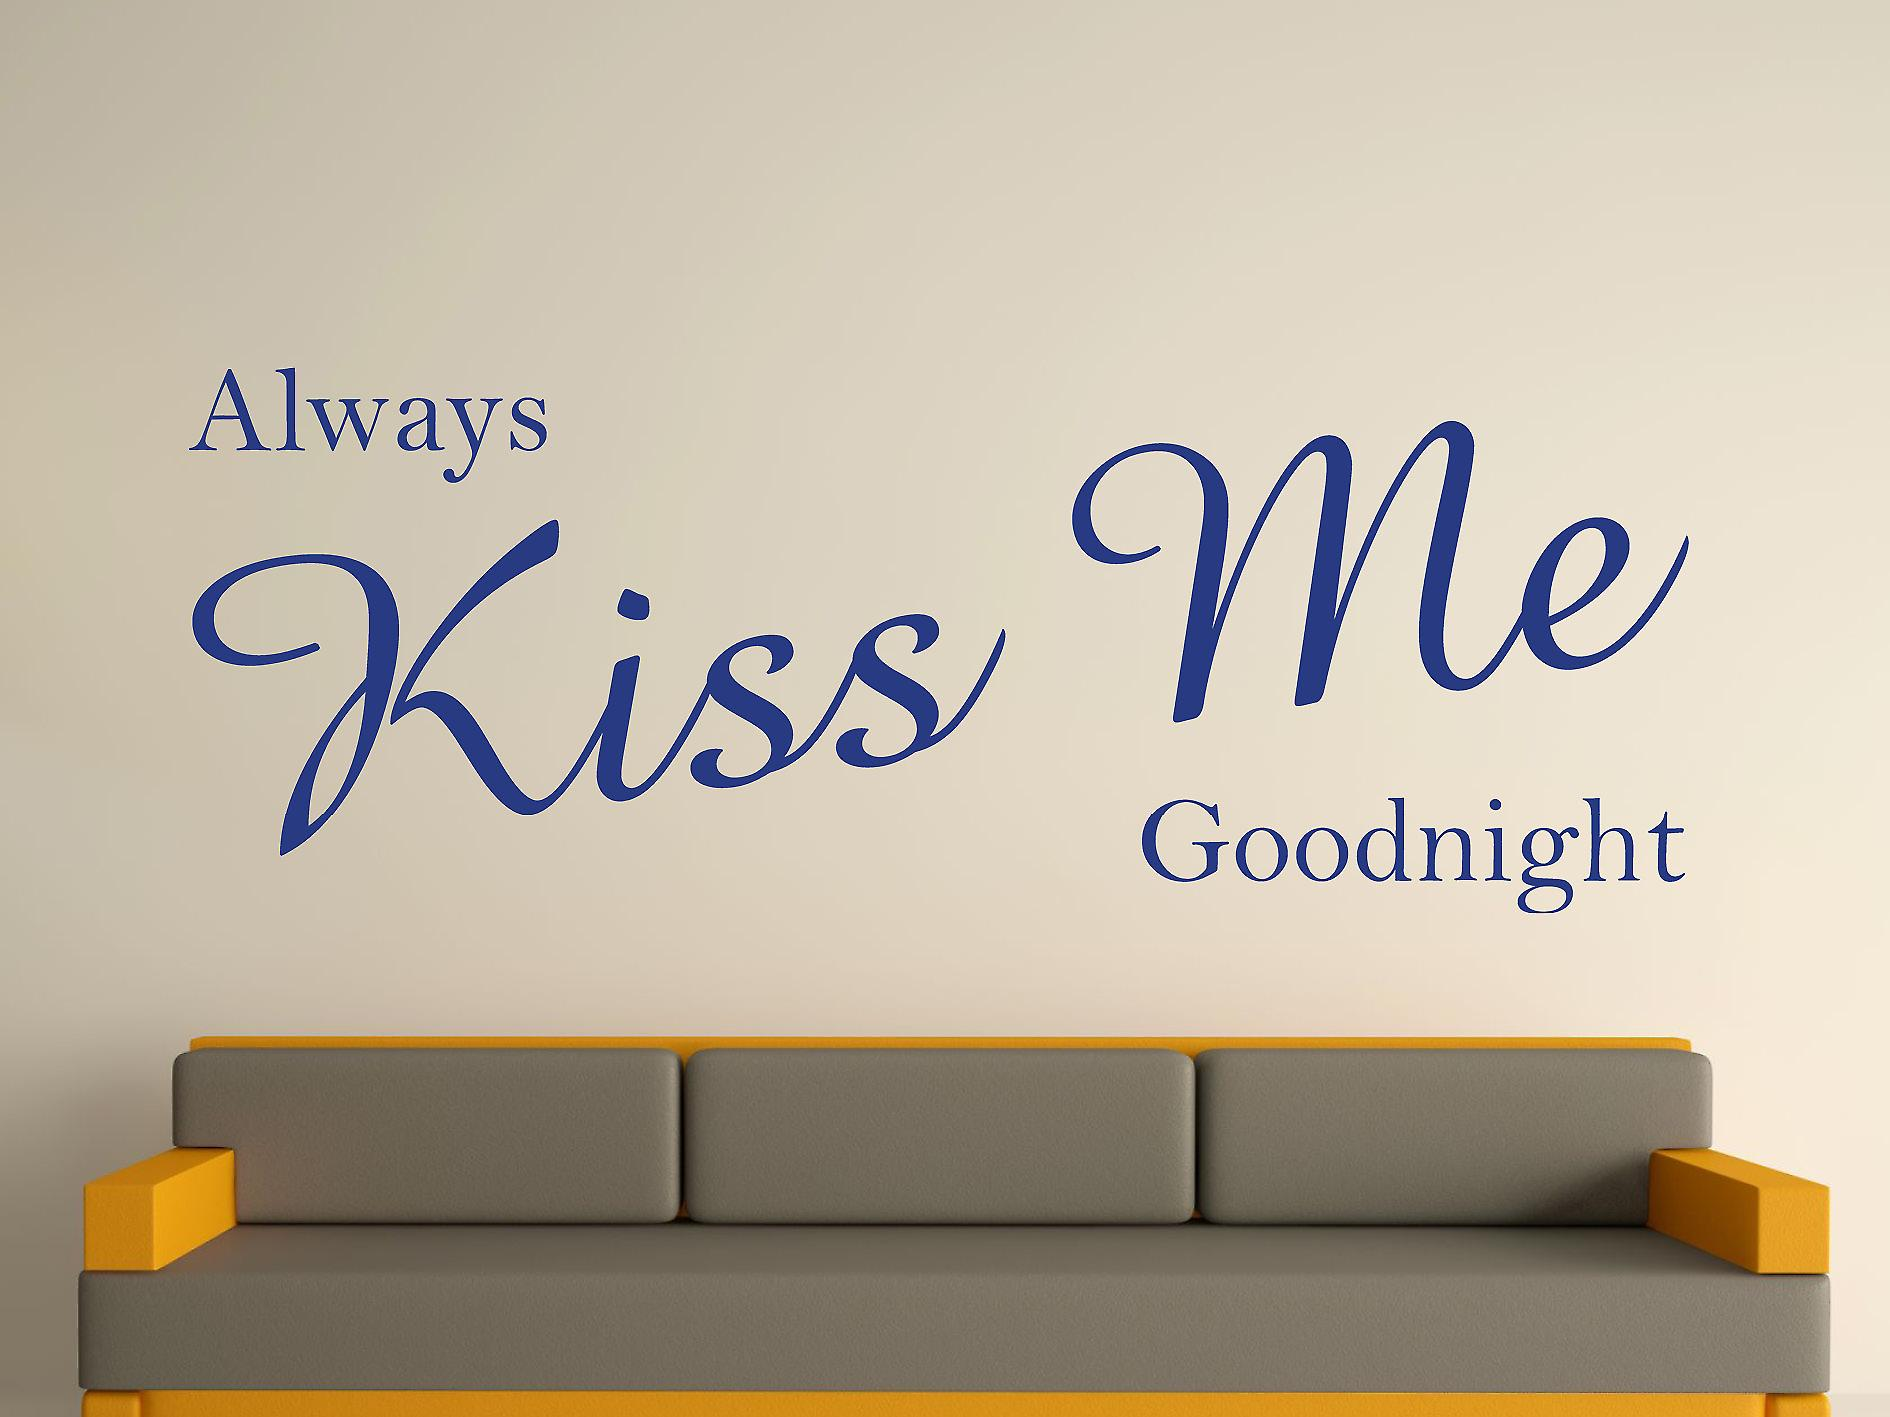 Always Kiss Me Goodnight Wall Art Sticker - Azure